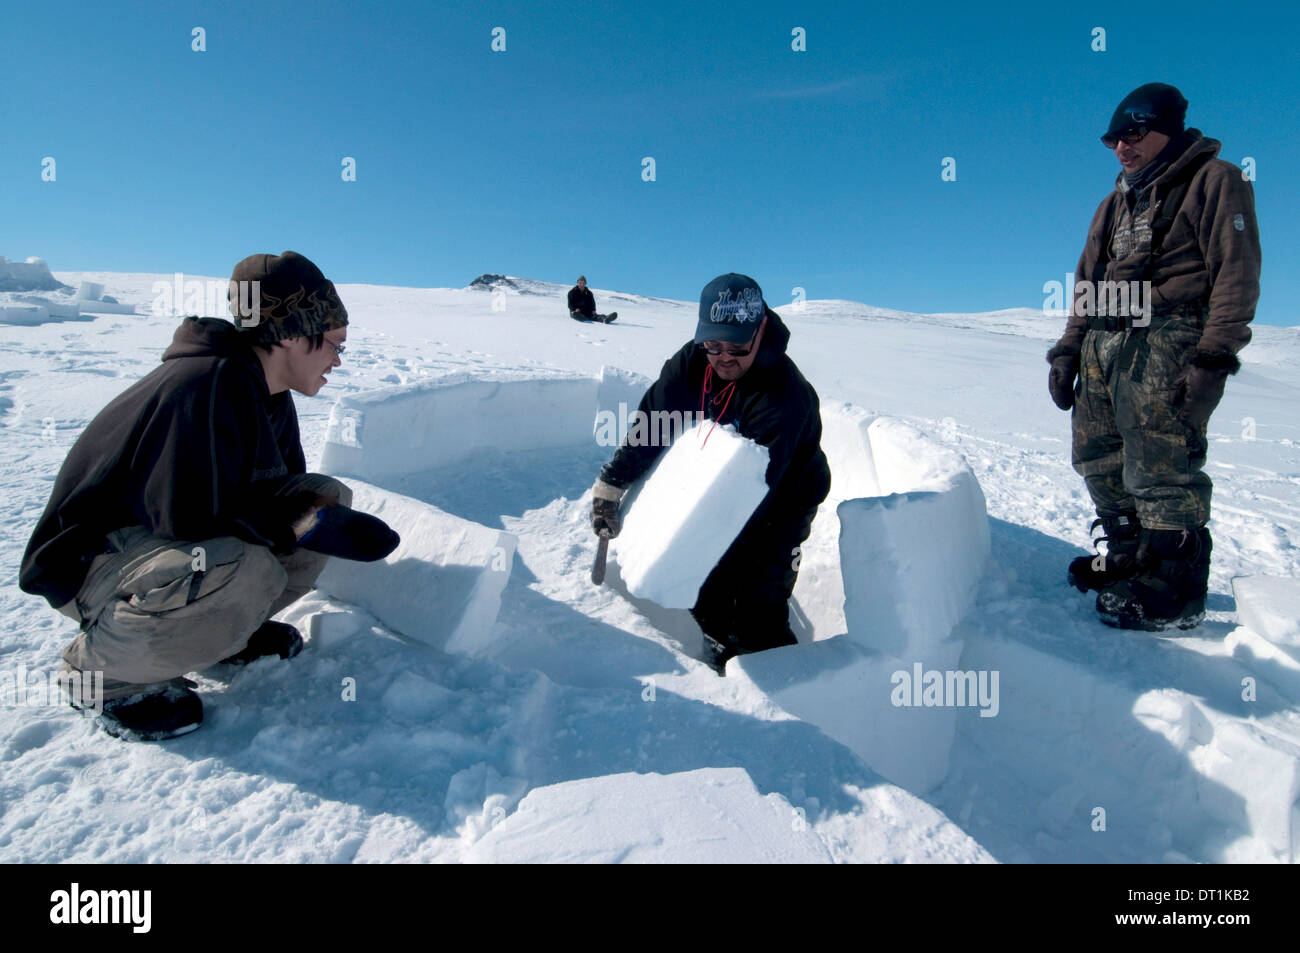 Inuit elder teaches igloo building to young men from the community of Pond Inlet, Nunavut, Canada, North America - Stock Image